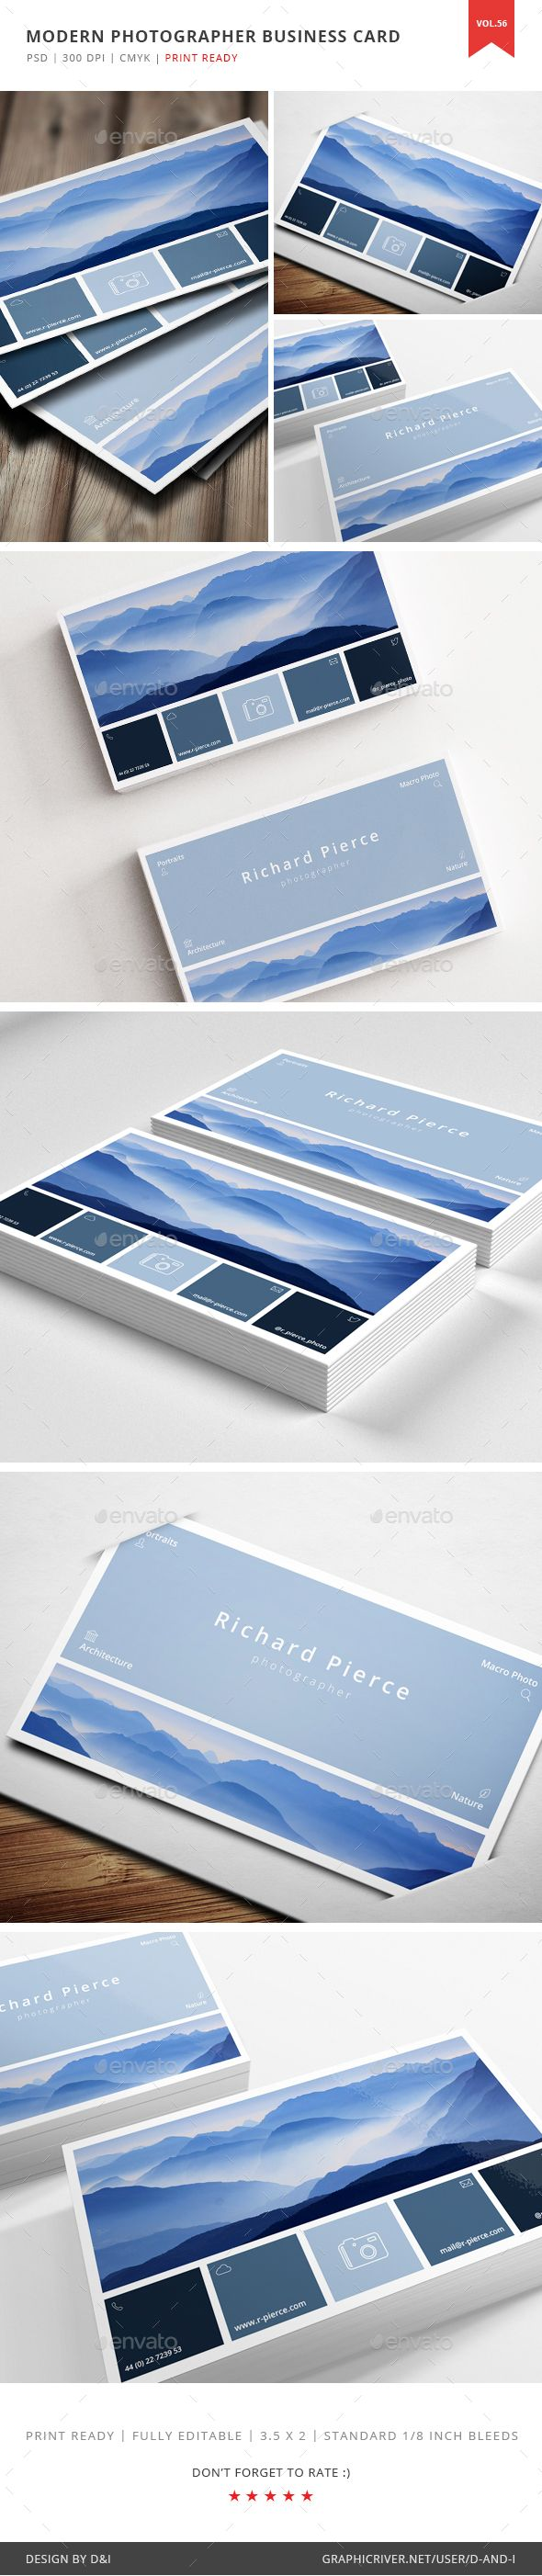 Modern Photographer Business Card Vol. 56 - Creative Business Card Template PSD. Download here: http://graphicriver.net/item/modern-photographer-business-card-vol-56/16601339?s_rank=222&ref=yinkira